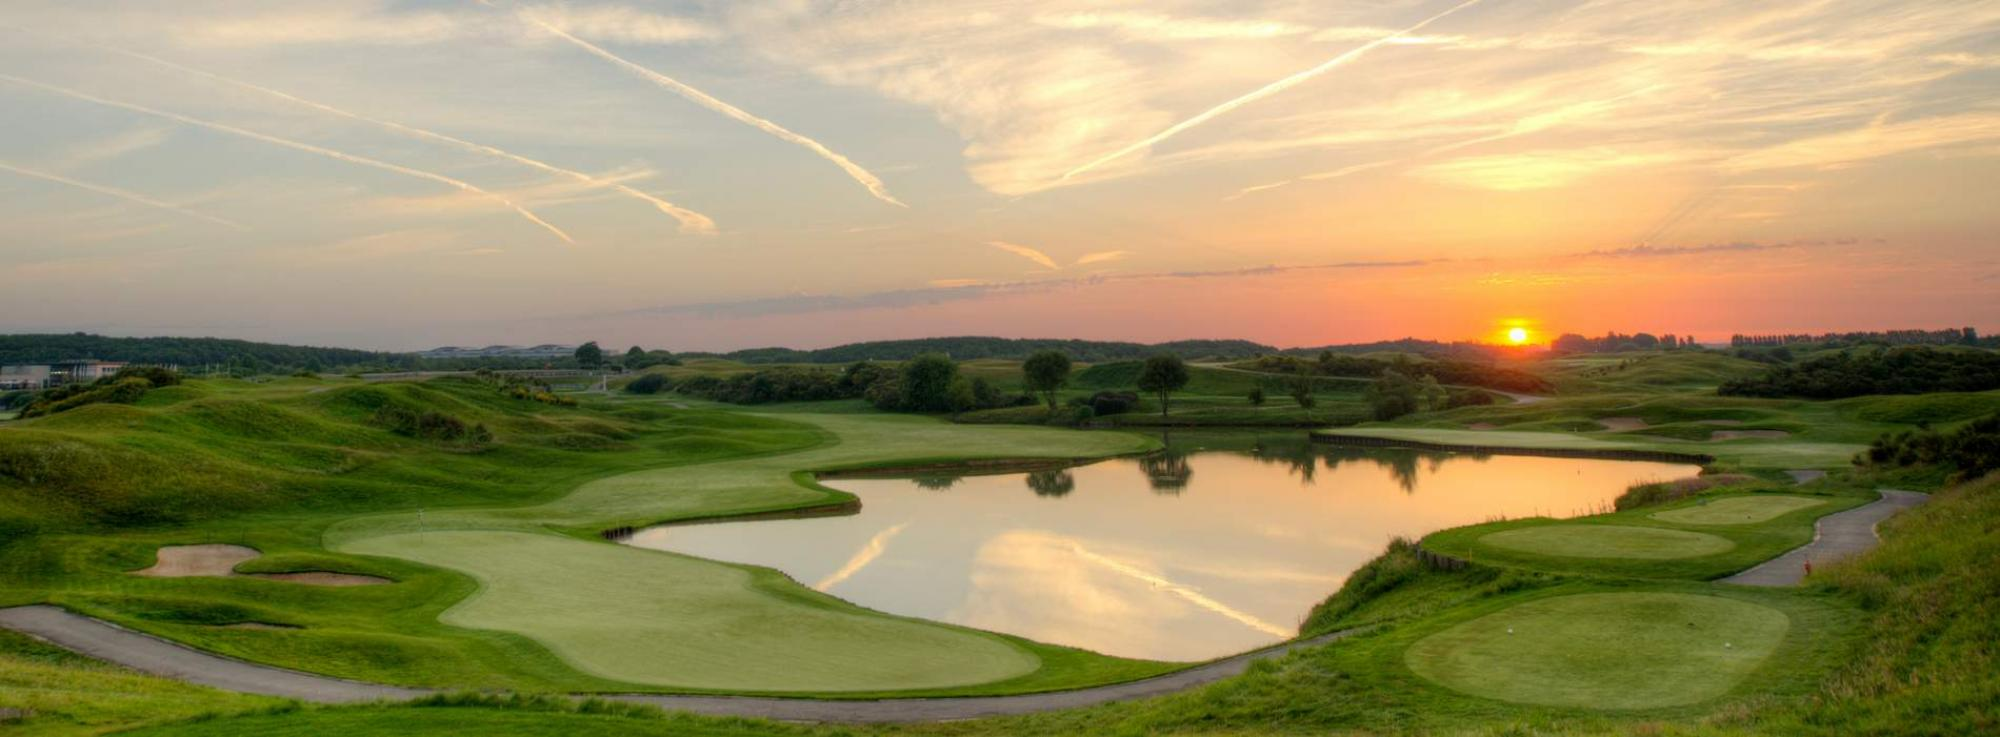 Le Golf National carries some of the most desirable golf course within Paris